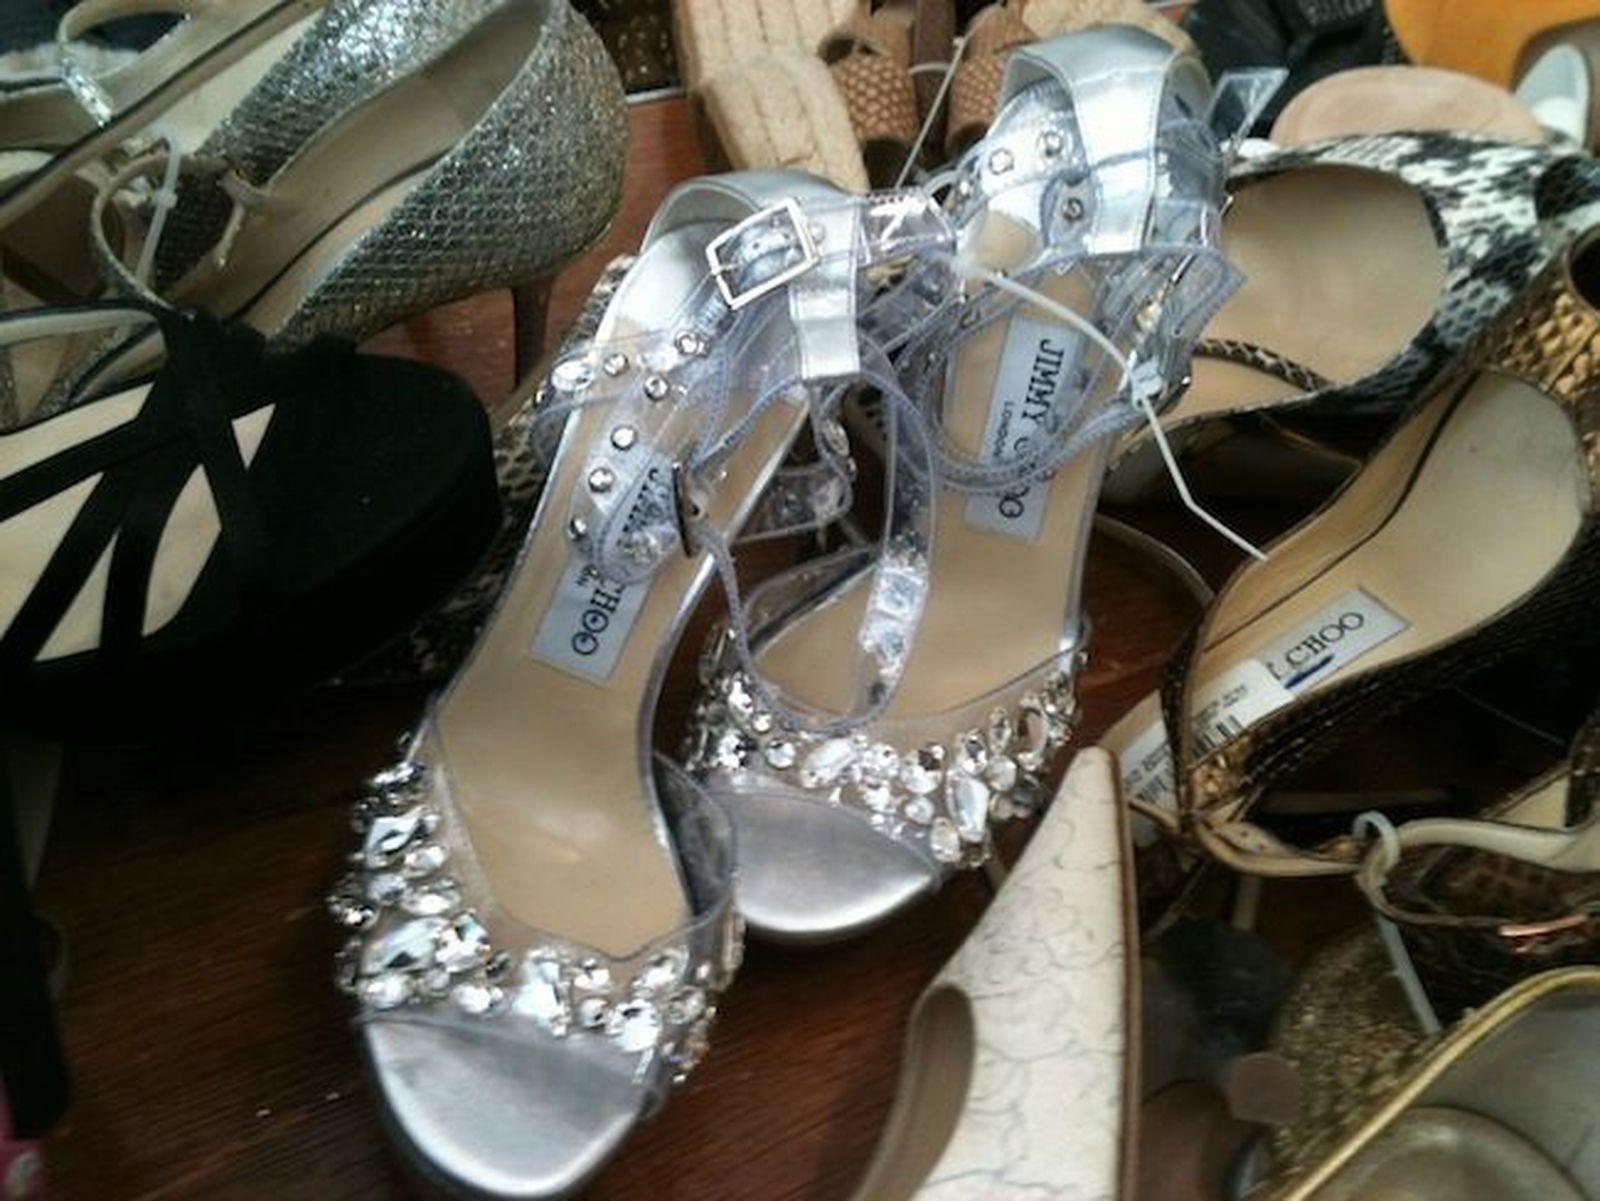 3b163d1aa2337 The Jimmy Choo Sample Sale Might Not Be Worth Your Time - Racked NY